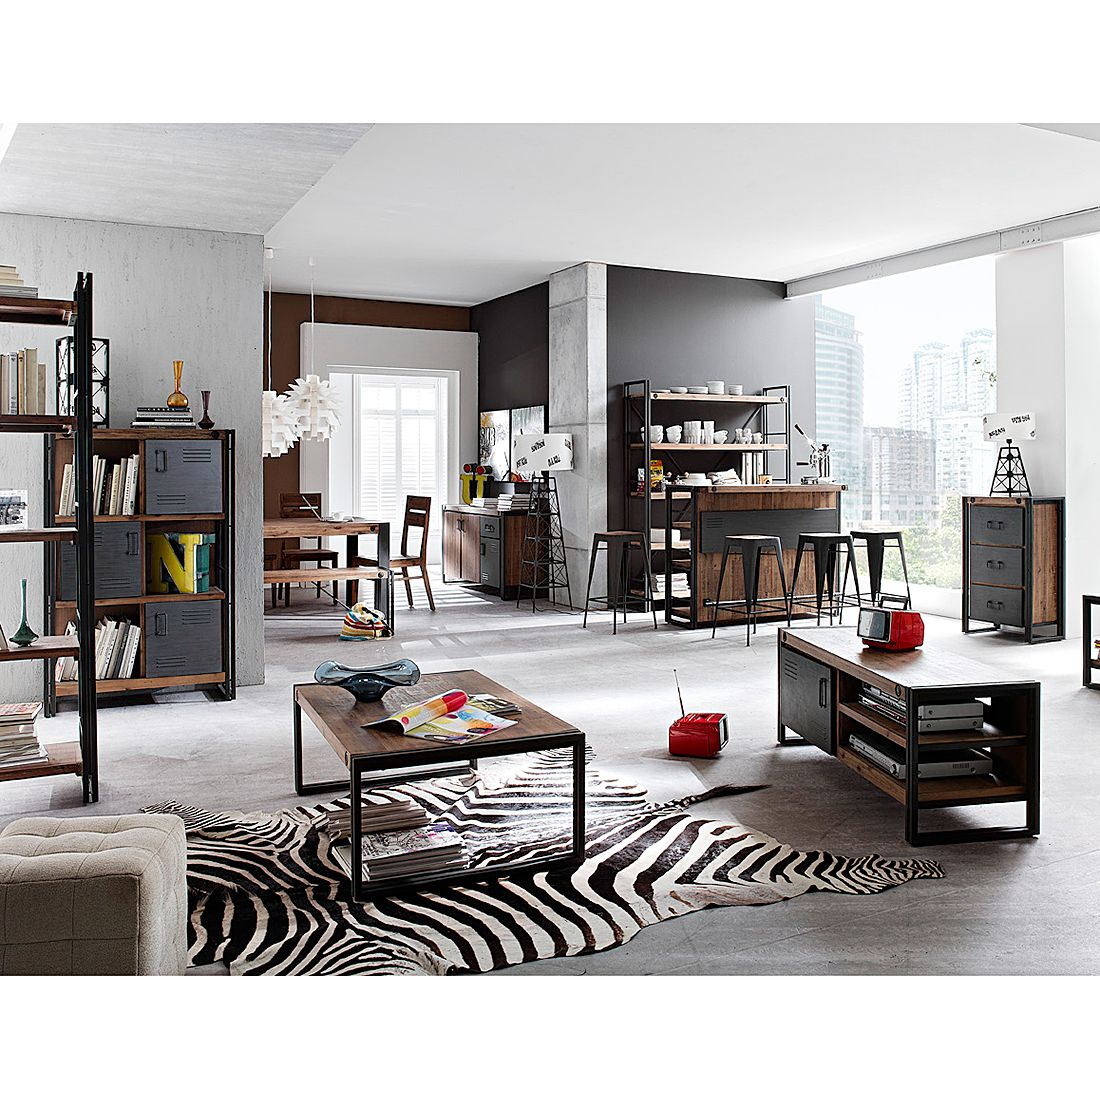 couchtisch manchester akazie massiv beistelltisch tisch sofatisch. Black Bedroom Furniture Sets. Home Design Ideas